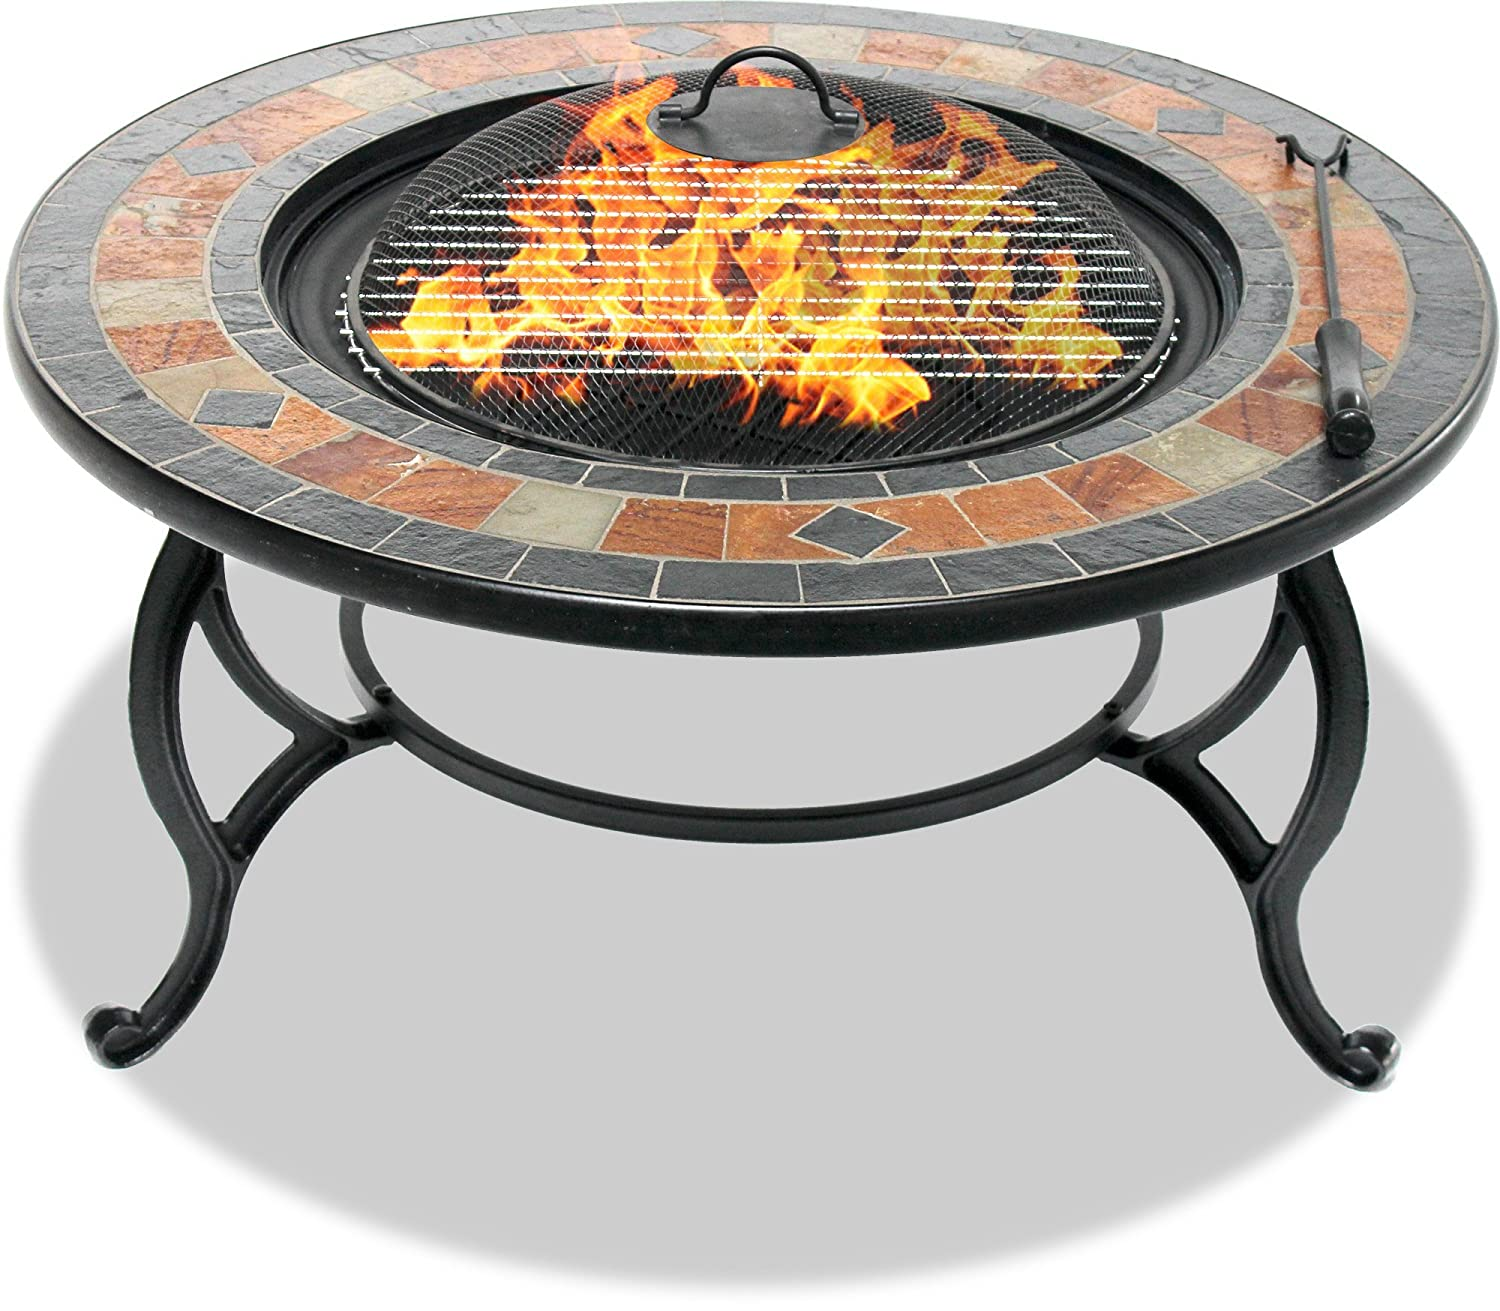 Renewed Barbecue and Ice Bucket with Slate Tiles Centurion Supports Fireology LANIAKA Lavish Garden /& Patio Heater Fire Pit Brazier Coffee Table